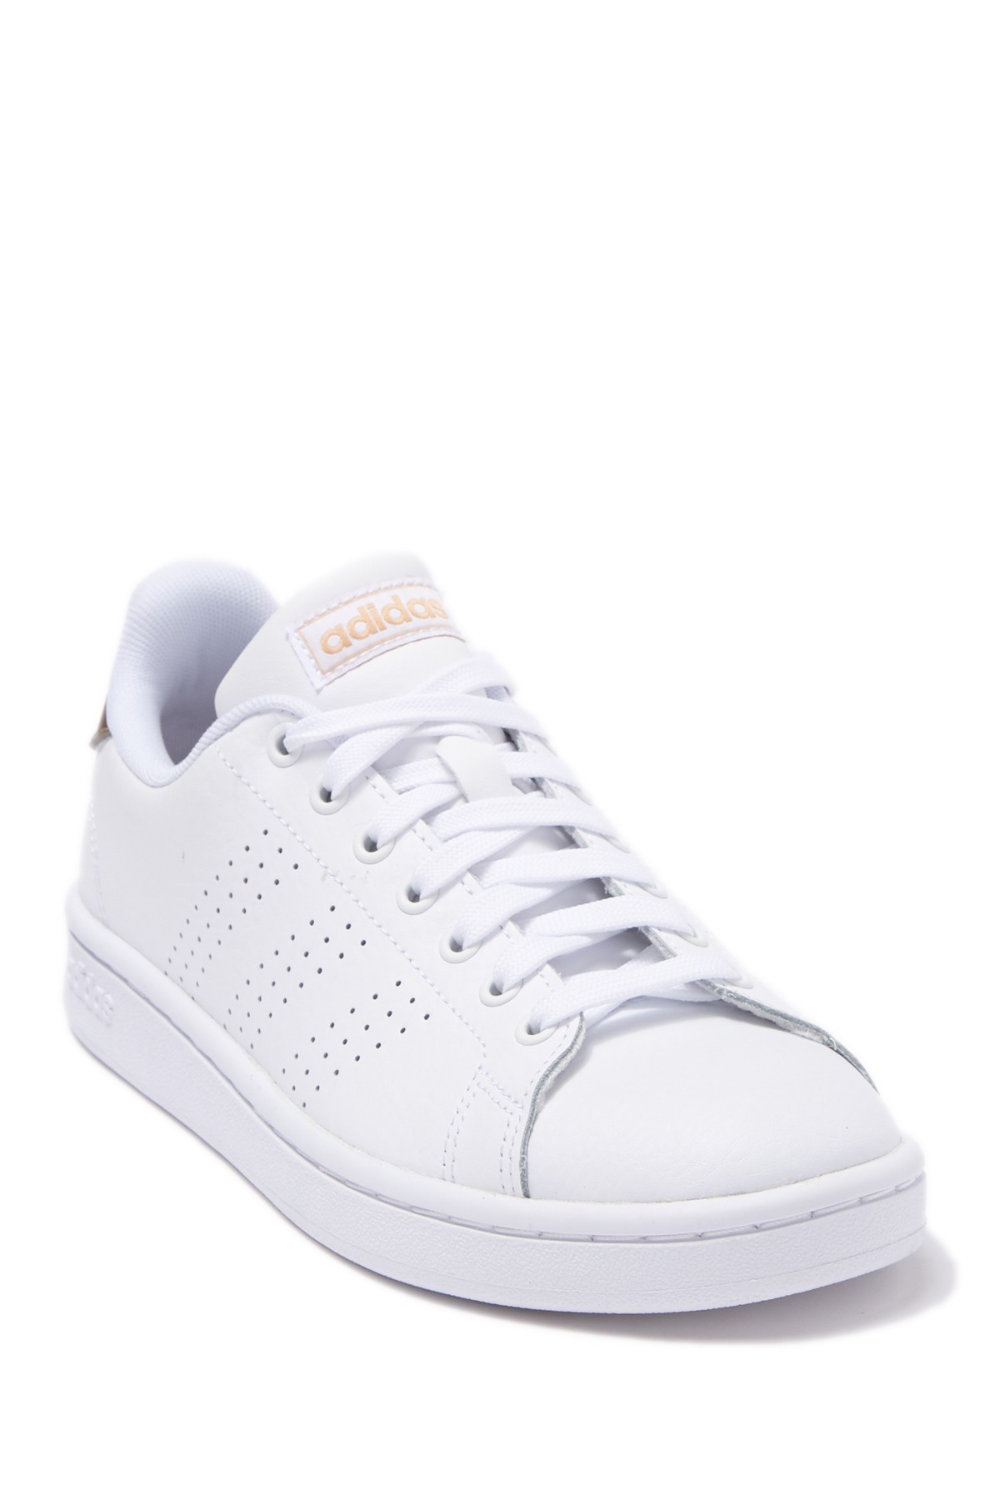 adidas | Advantage Leather Sneaker | Nordstrom Rack in 2020 ...